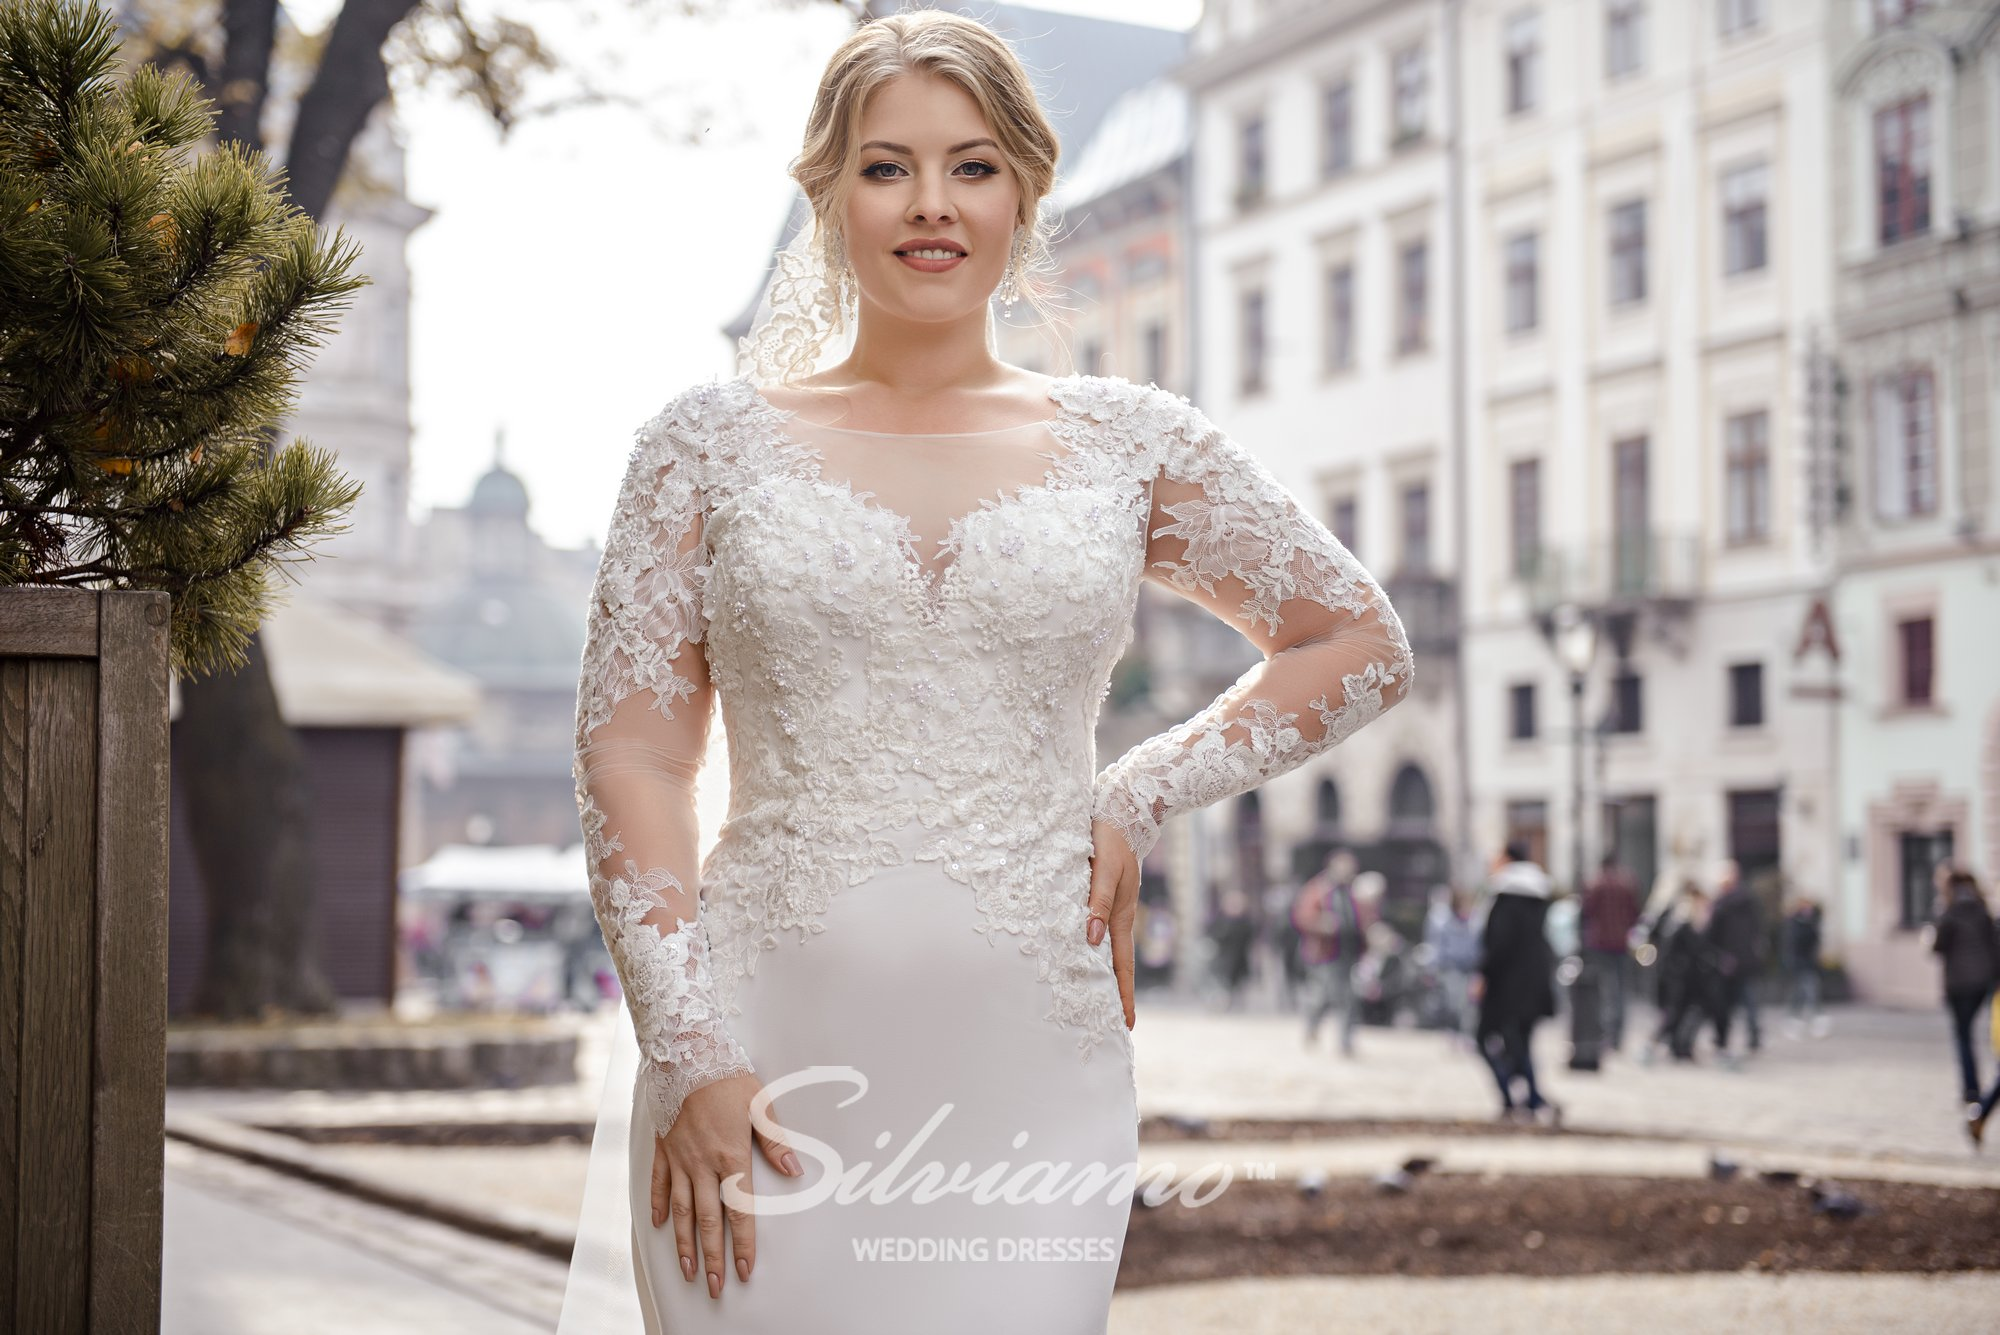 plus-size wedding dresses, Plus size dresses, buy wholesale, delivery, countries, fitted, style, lace corset, long sleeves, Silviamo-1